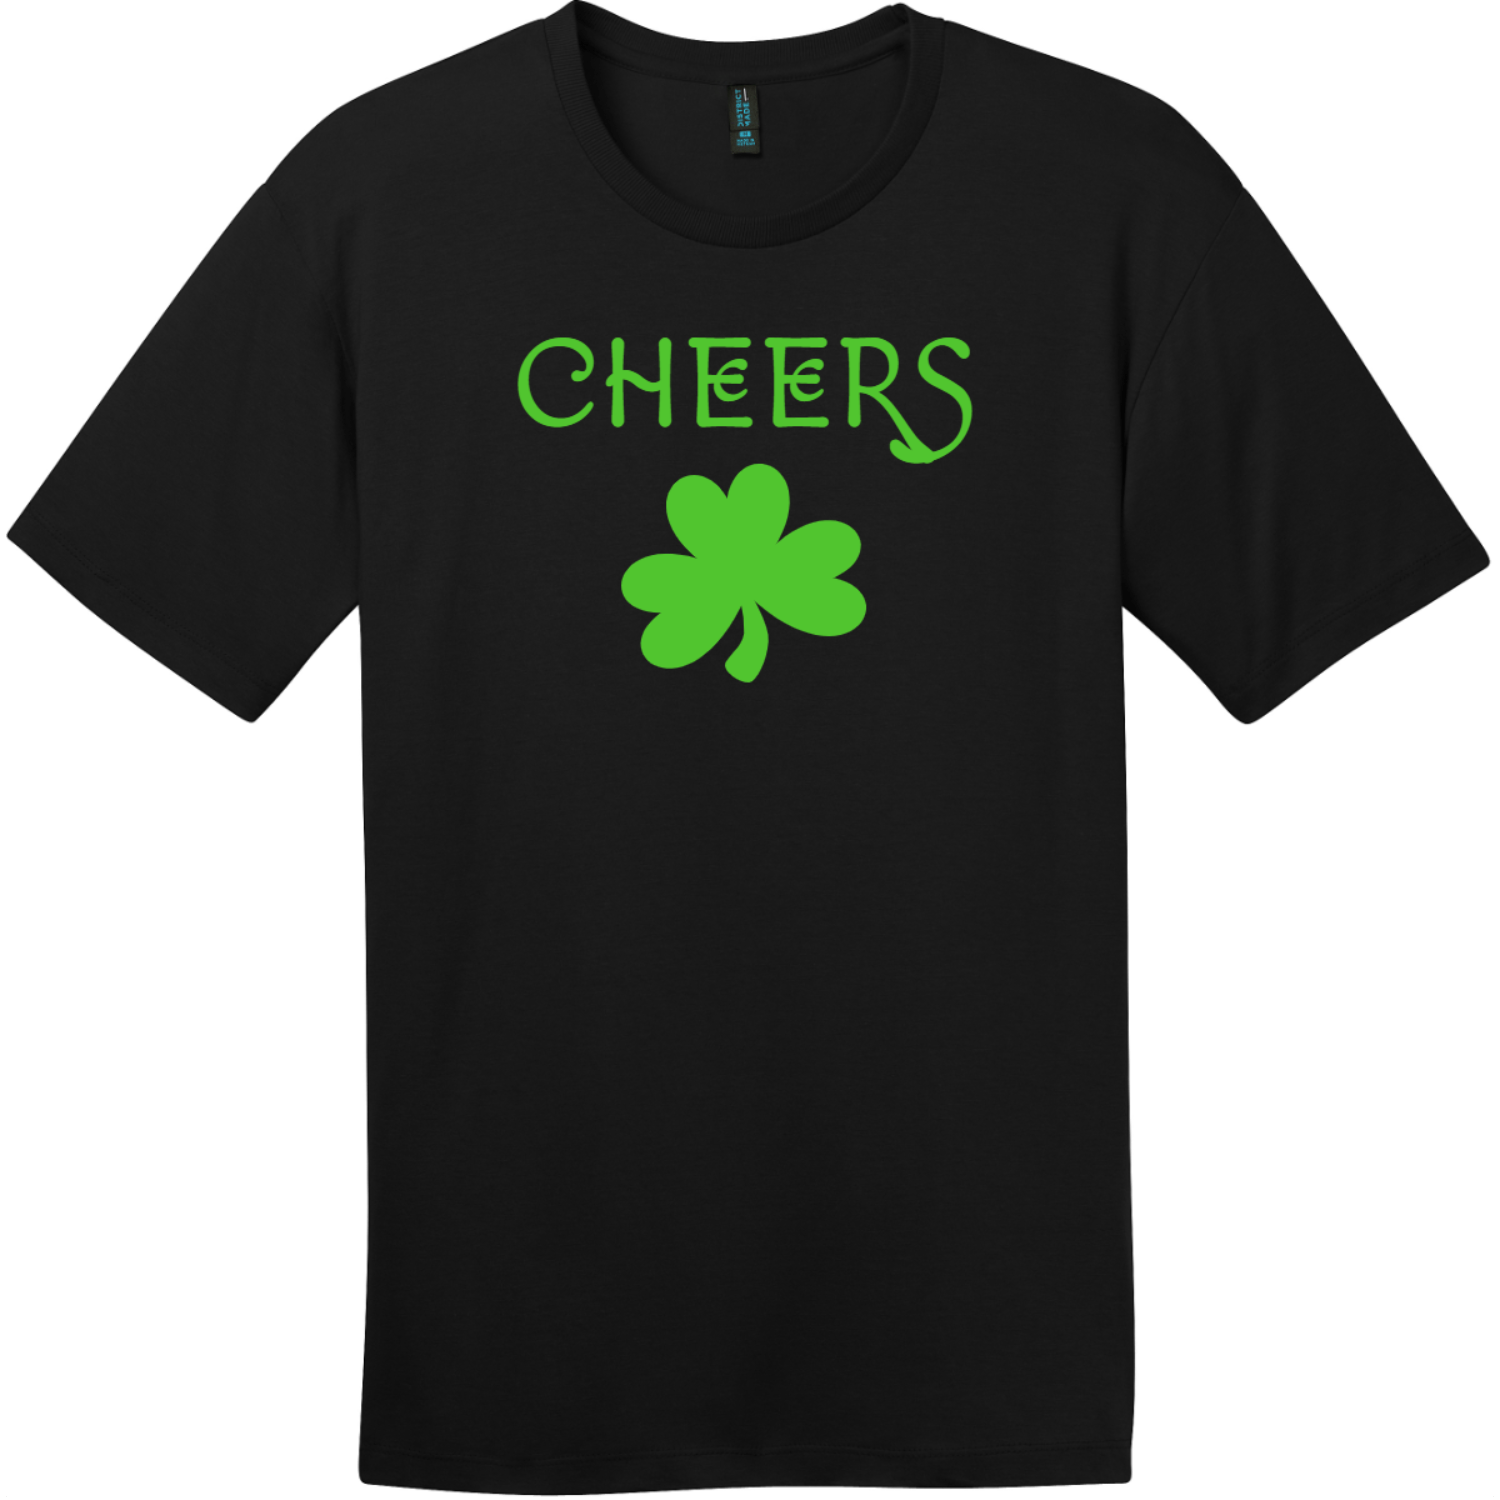 Cheers Shamrock St. Patricks Day T Shirt Jet Black District Perfect Weight Tee DT104